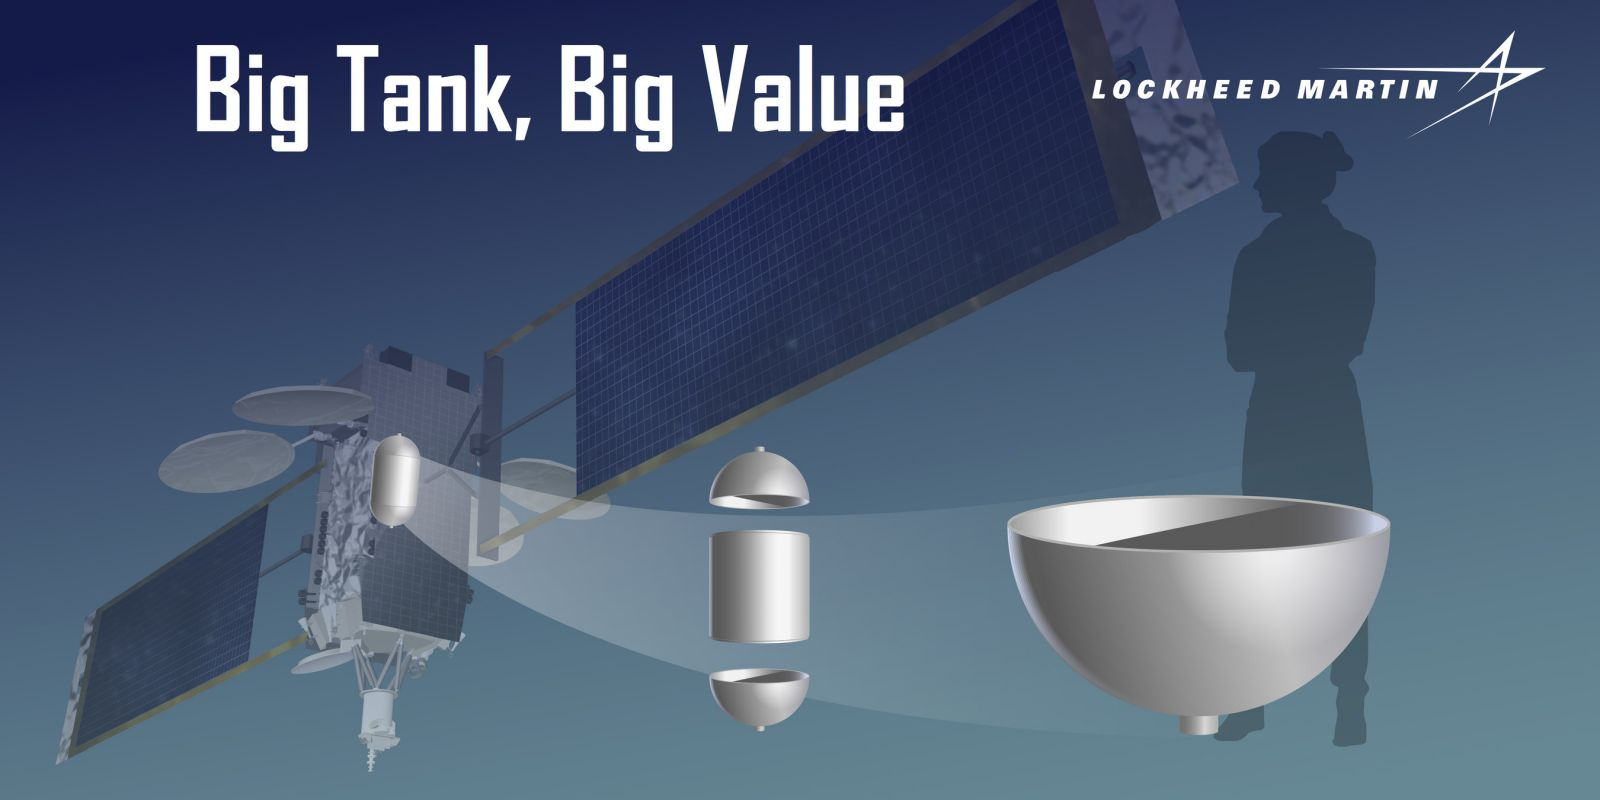 Lockheed Martin has produced domes for satellite fuel tanks via 3 D printing. Image Credit: Lockheed Martin